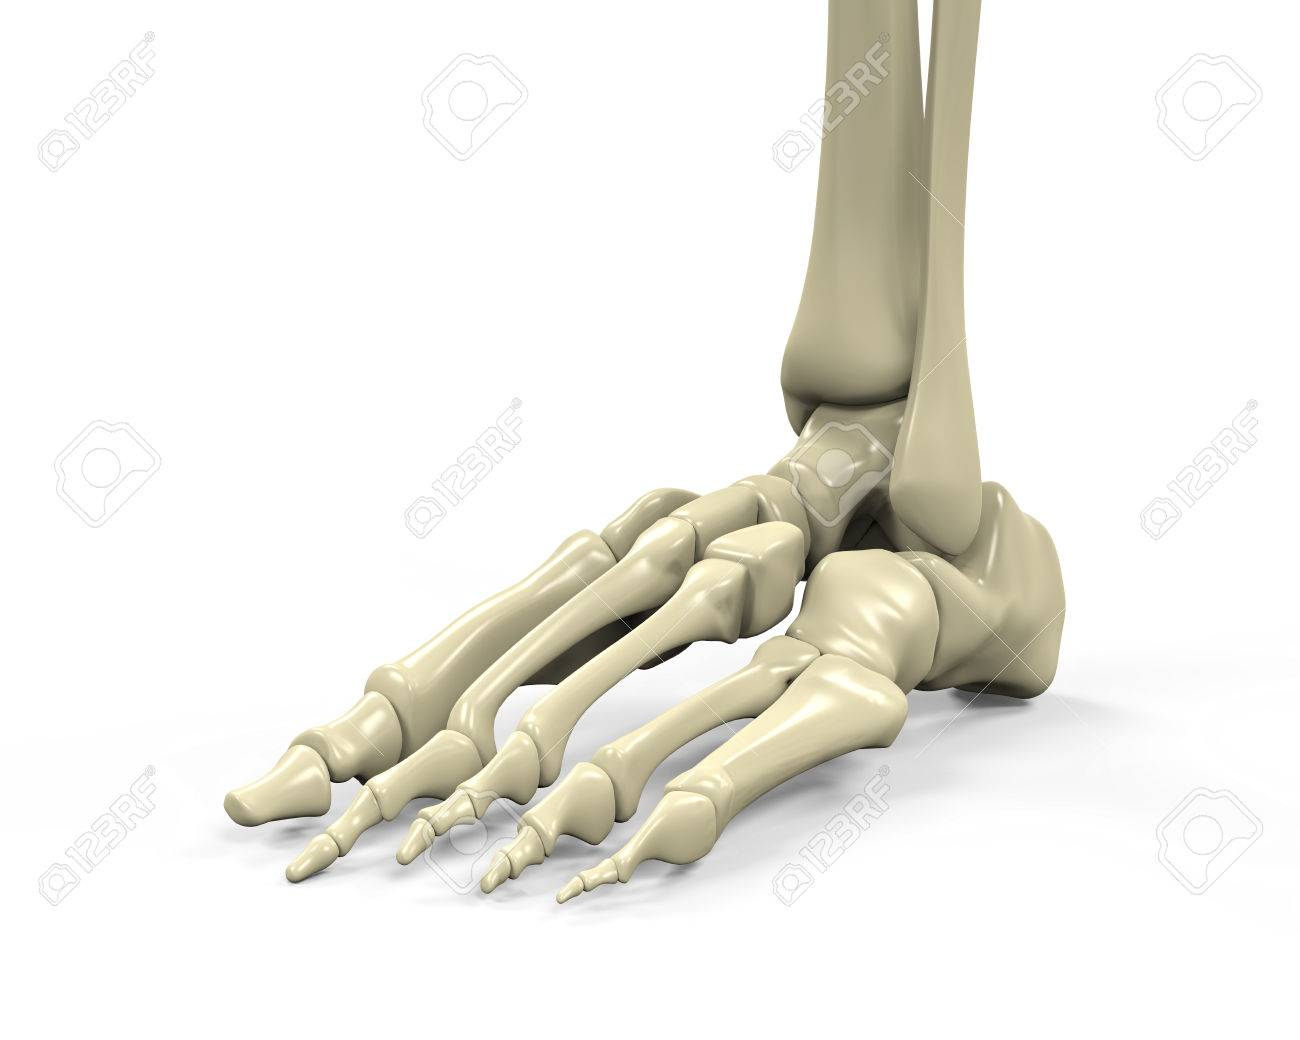 Foot Skeleton Anatomy Stock Photo, Picture And Royalty Free Image ...